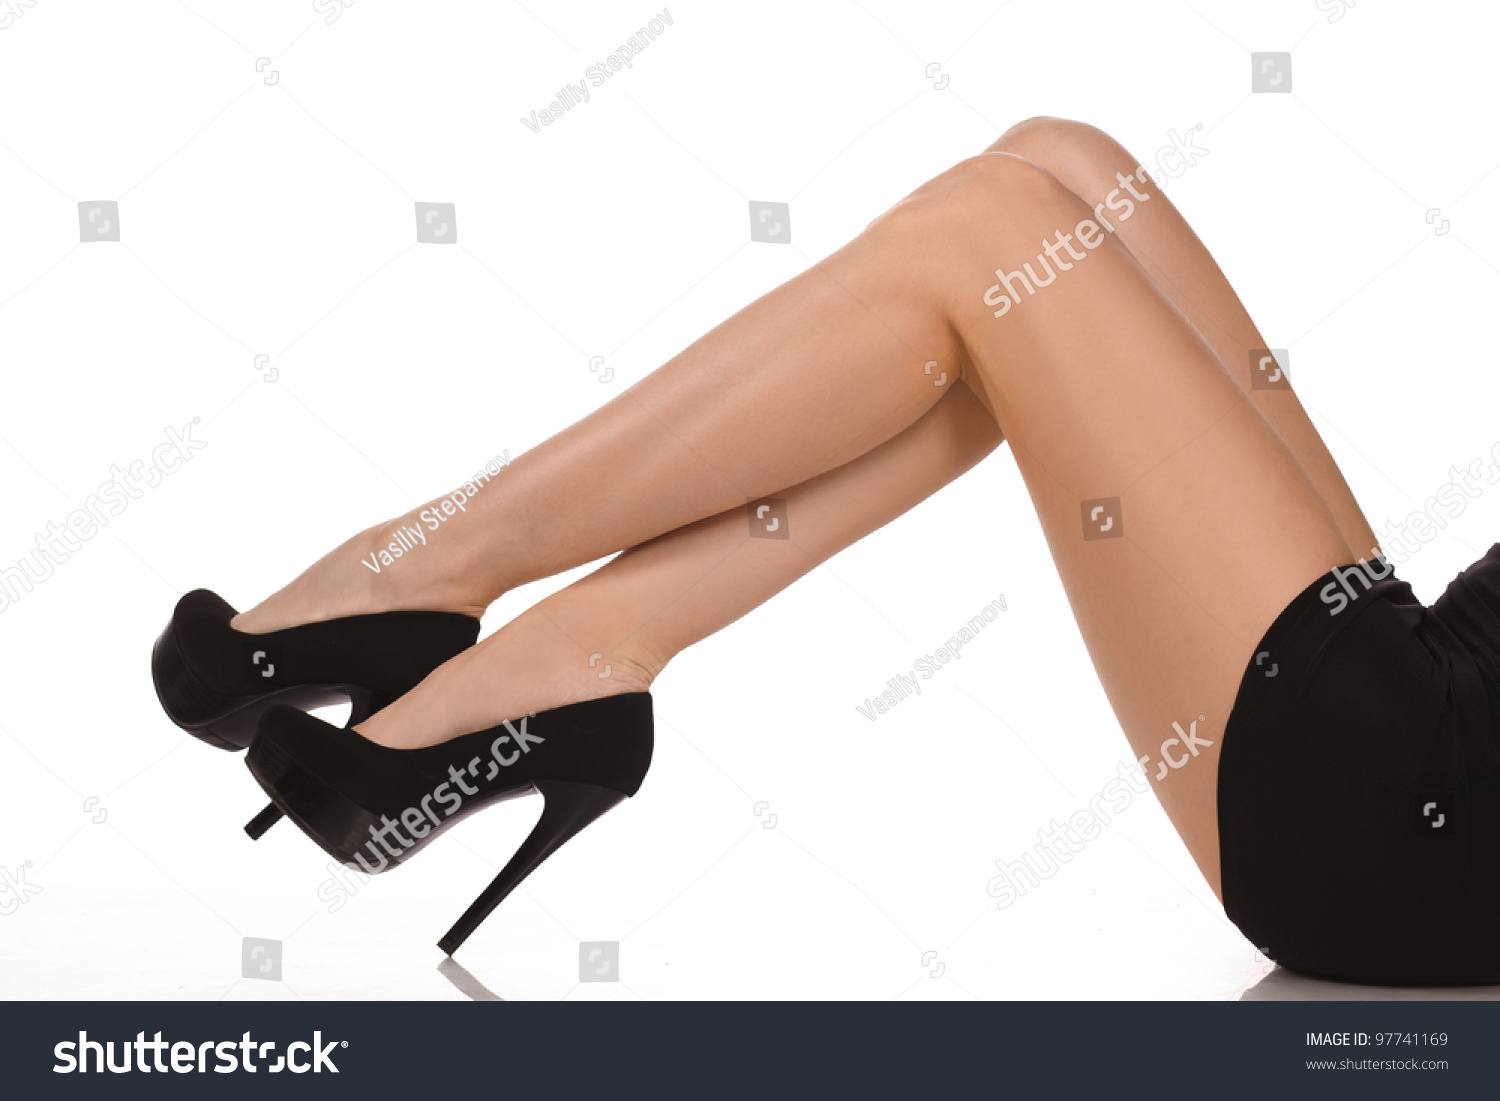 The Long Elegant Legs coupon discount will adjust your order total. Some sellers also offer Thank. If not, navigate back through the checkout process and try again. Get Unique Promo Codes. Plus get our best Long Elegant Legs coupons in our email newsletter. We respect your privacy and will never share your email address.